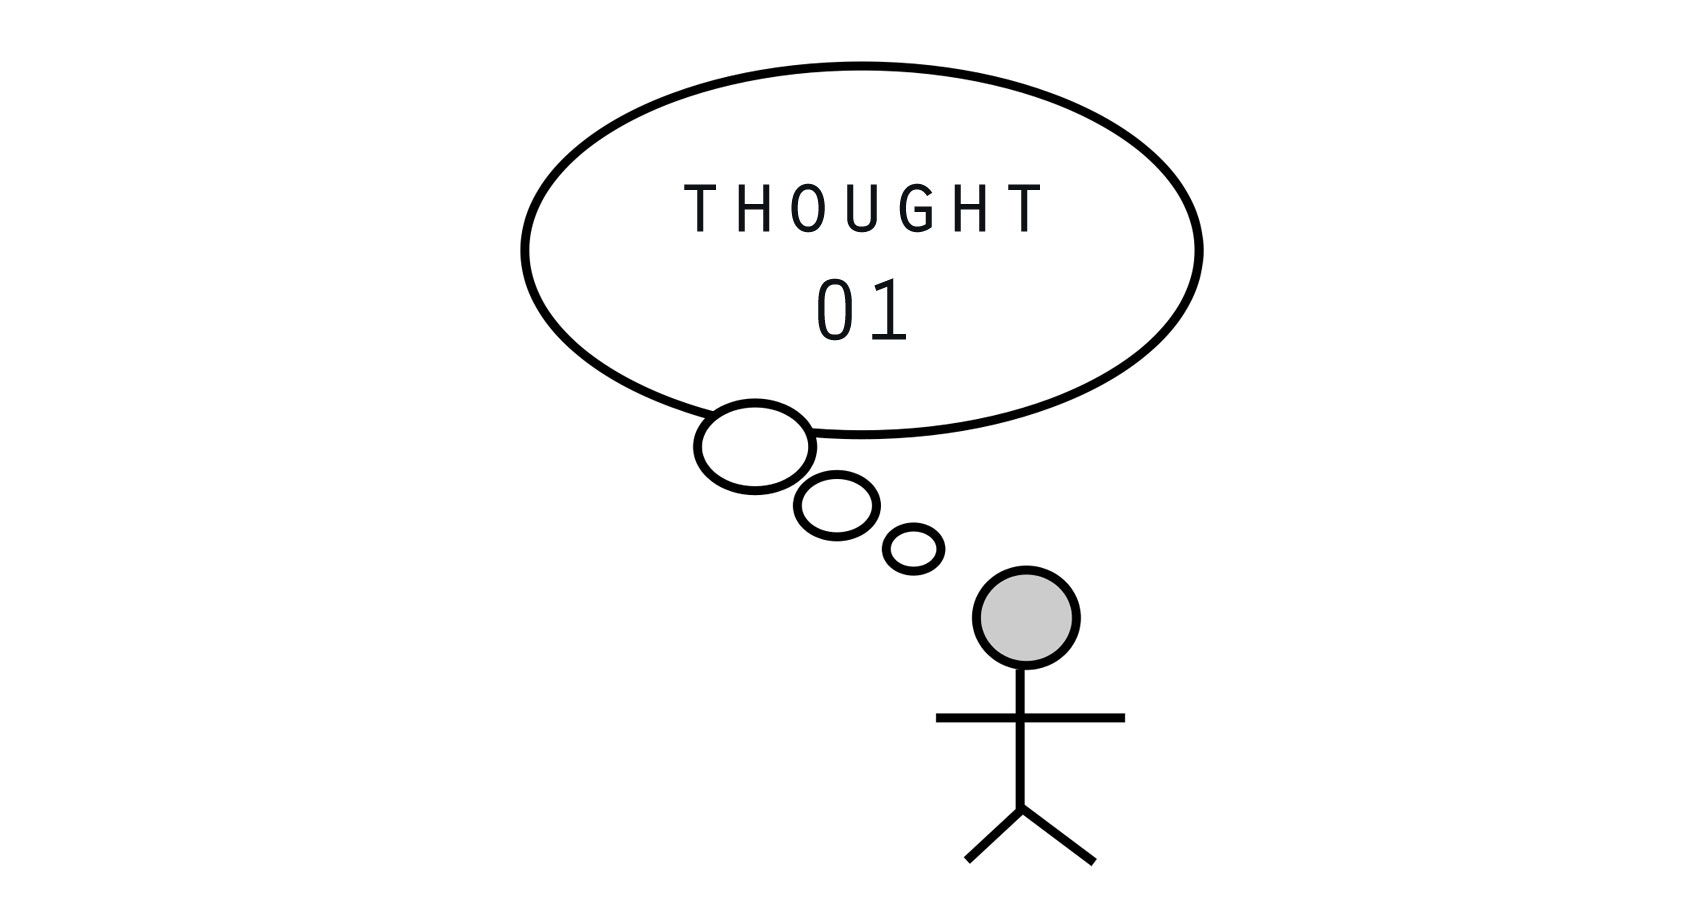 Thought 01 written by Stan at Spillwords.com